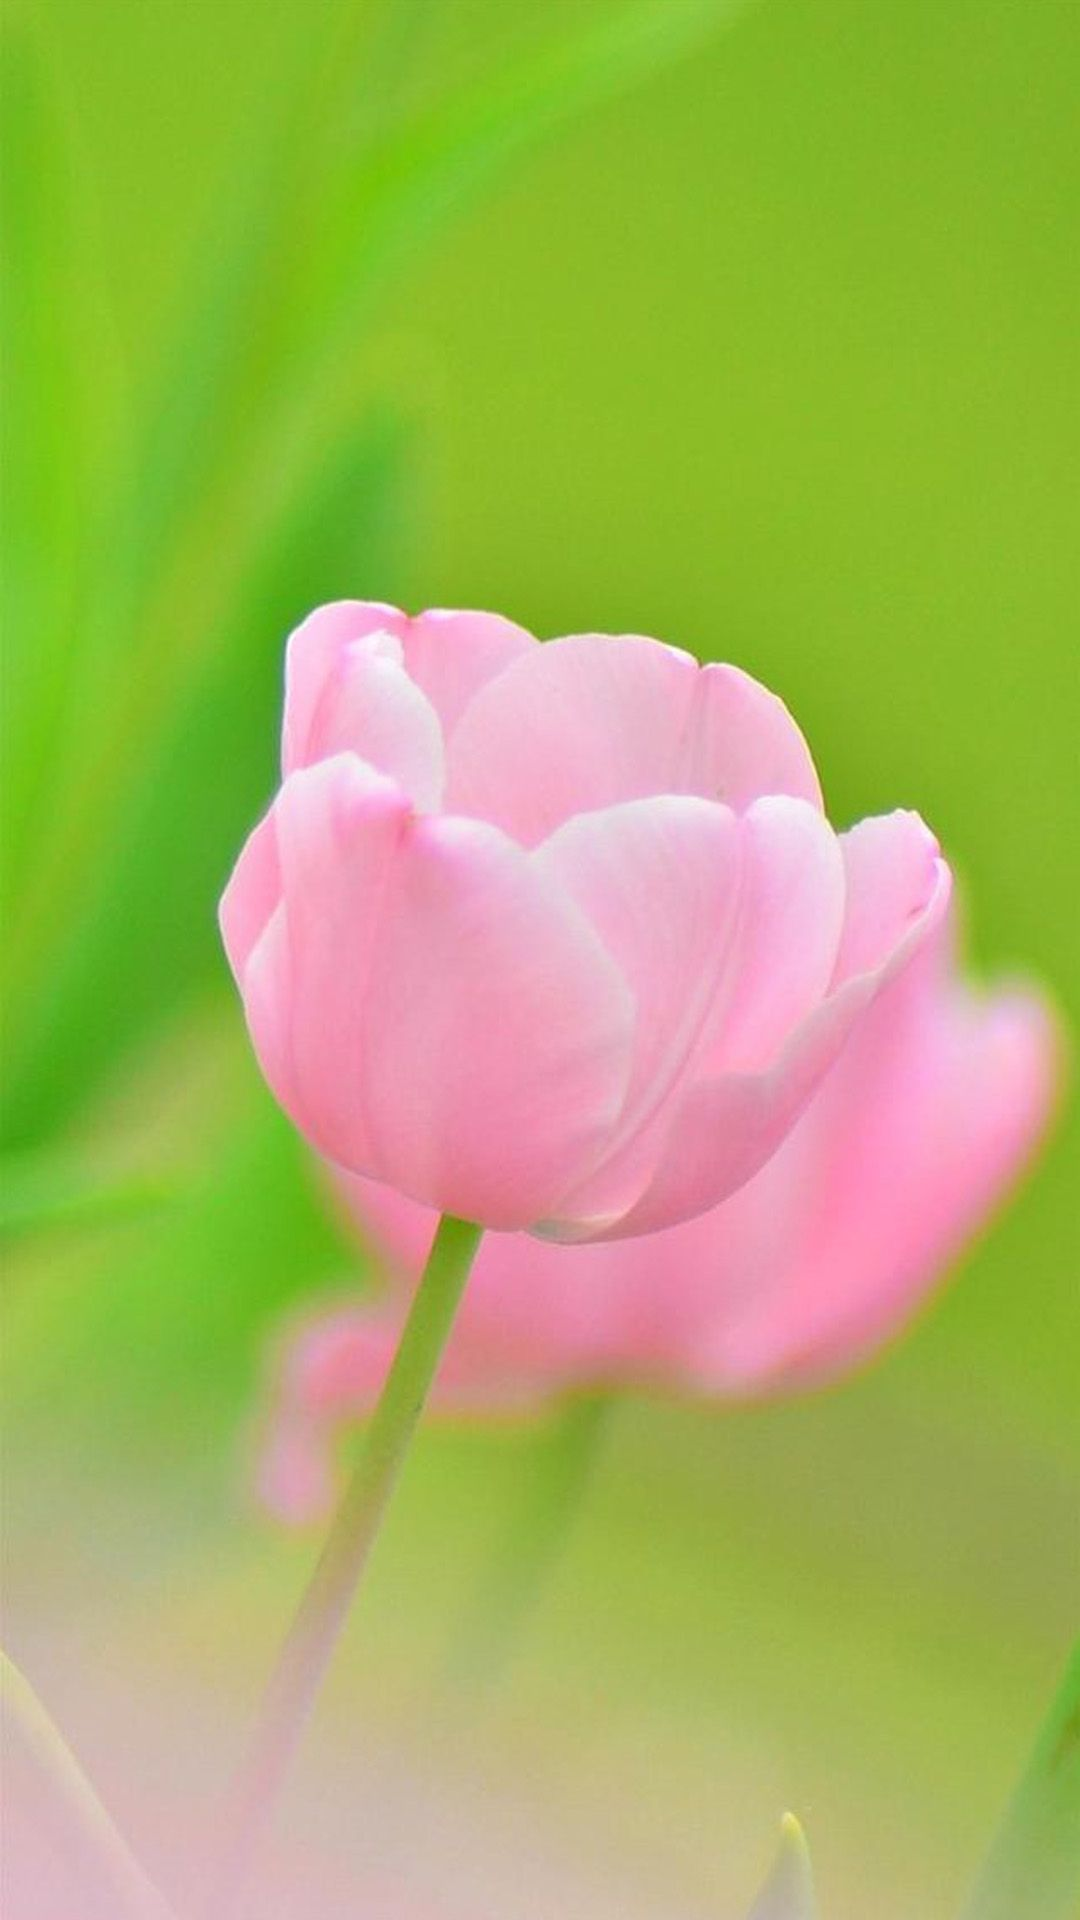 Pink Flower Bokeh Macro iPhone 6 wallpaper | Flower, Wallpaper ... for Green And Pink Flower Wallpaper  45ifm